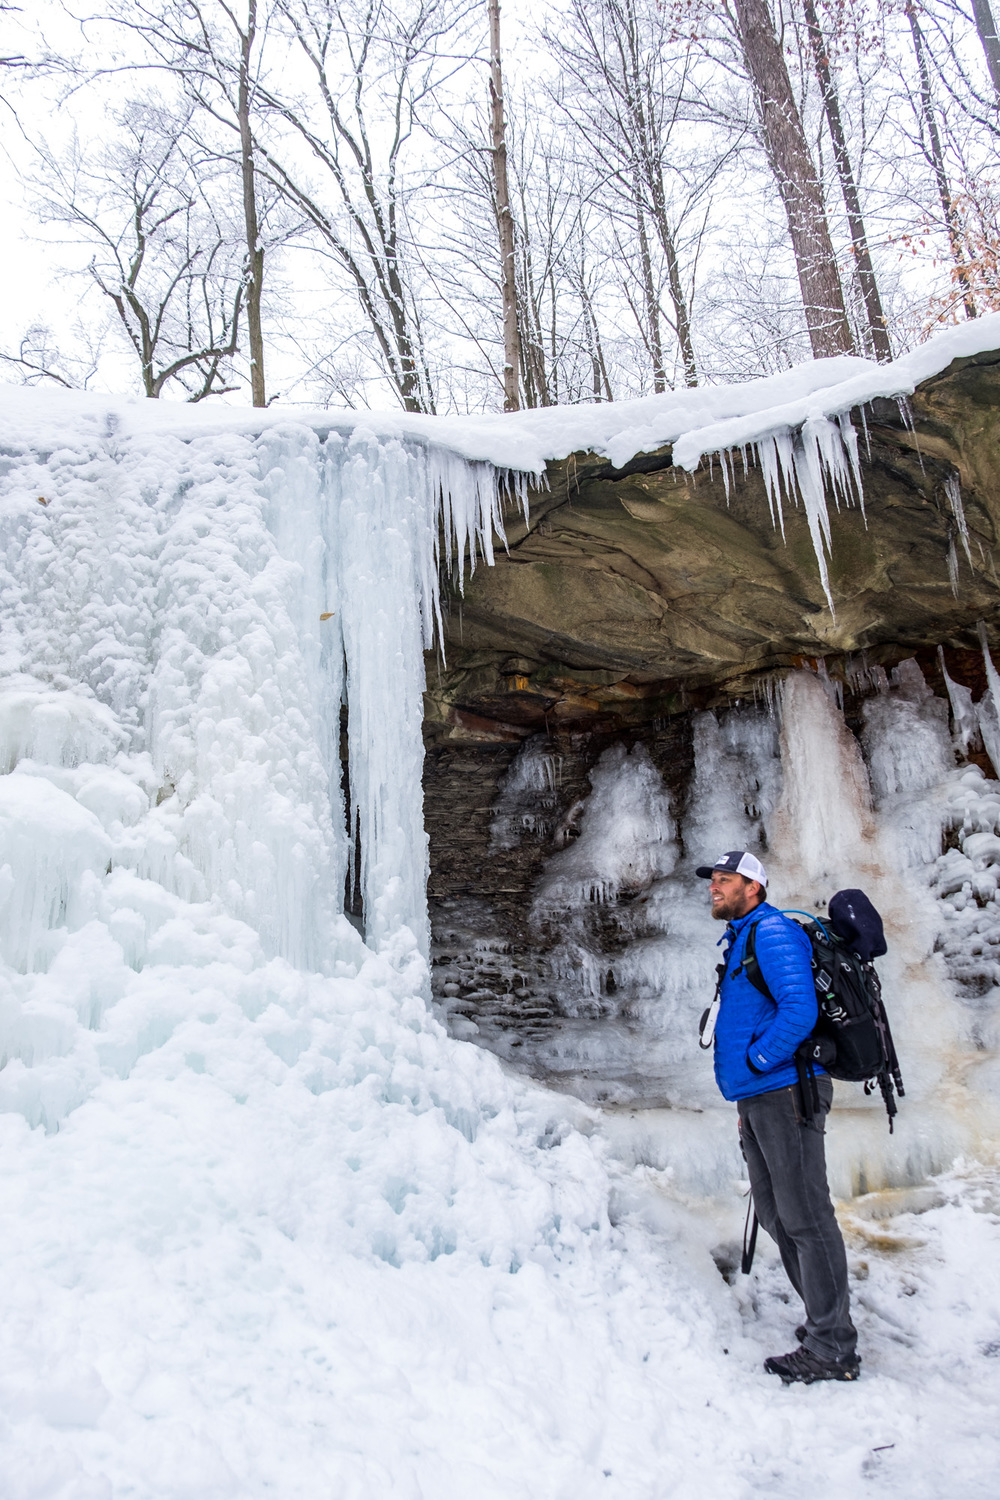 JI pondering if he should climb behind the frozen waterfall.